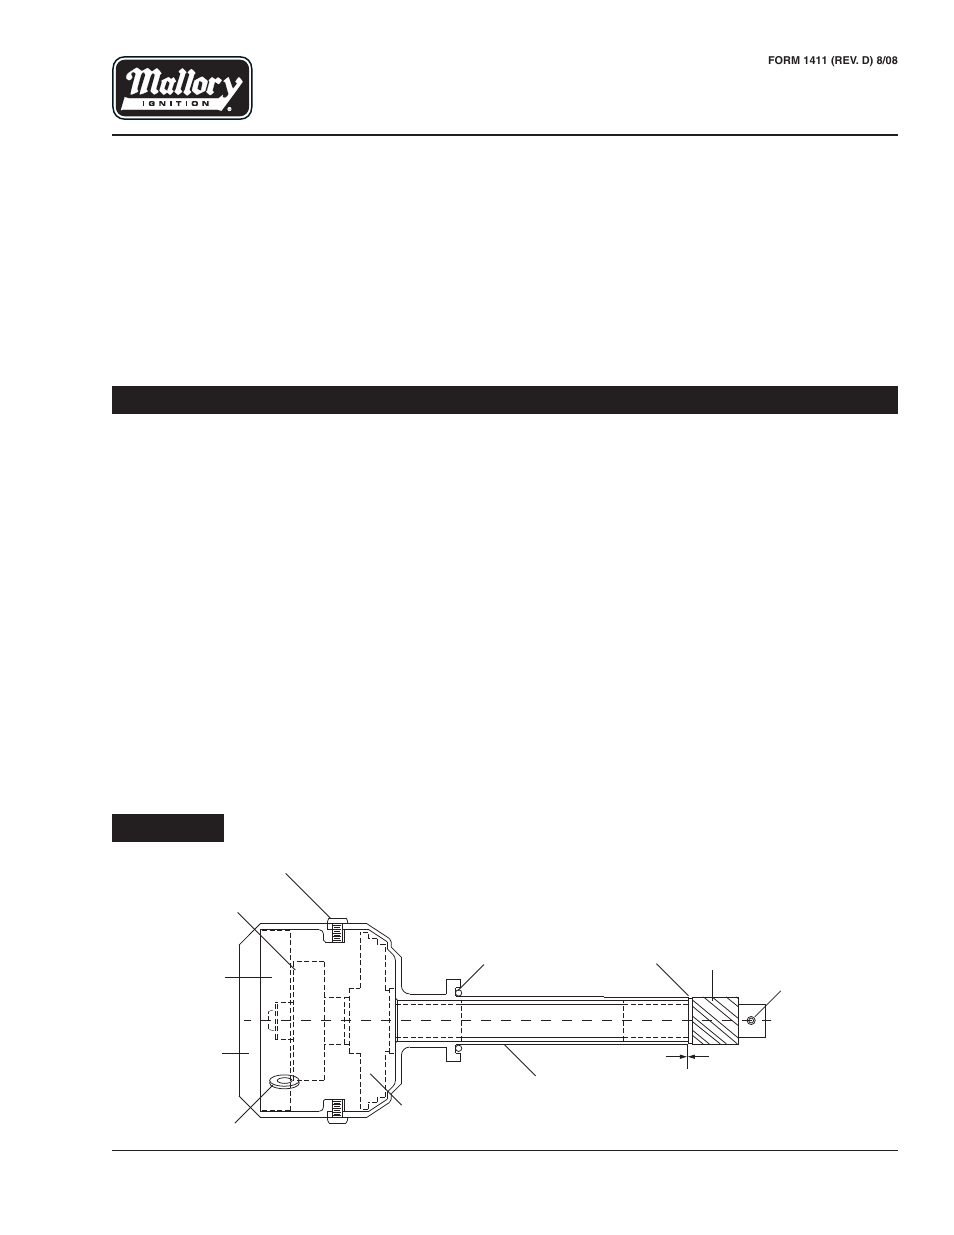 mallory ignition mallory unilite distributor a556 page1 mallory ignition mallory unilite distributor �556 user manual 2 mallory unilite module wiring diagram at sewacar.co